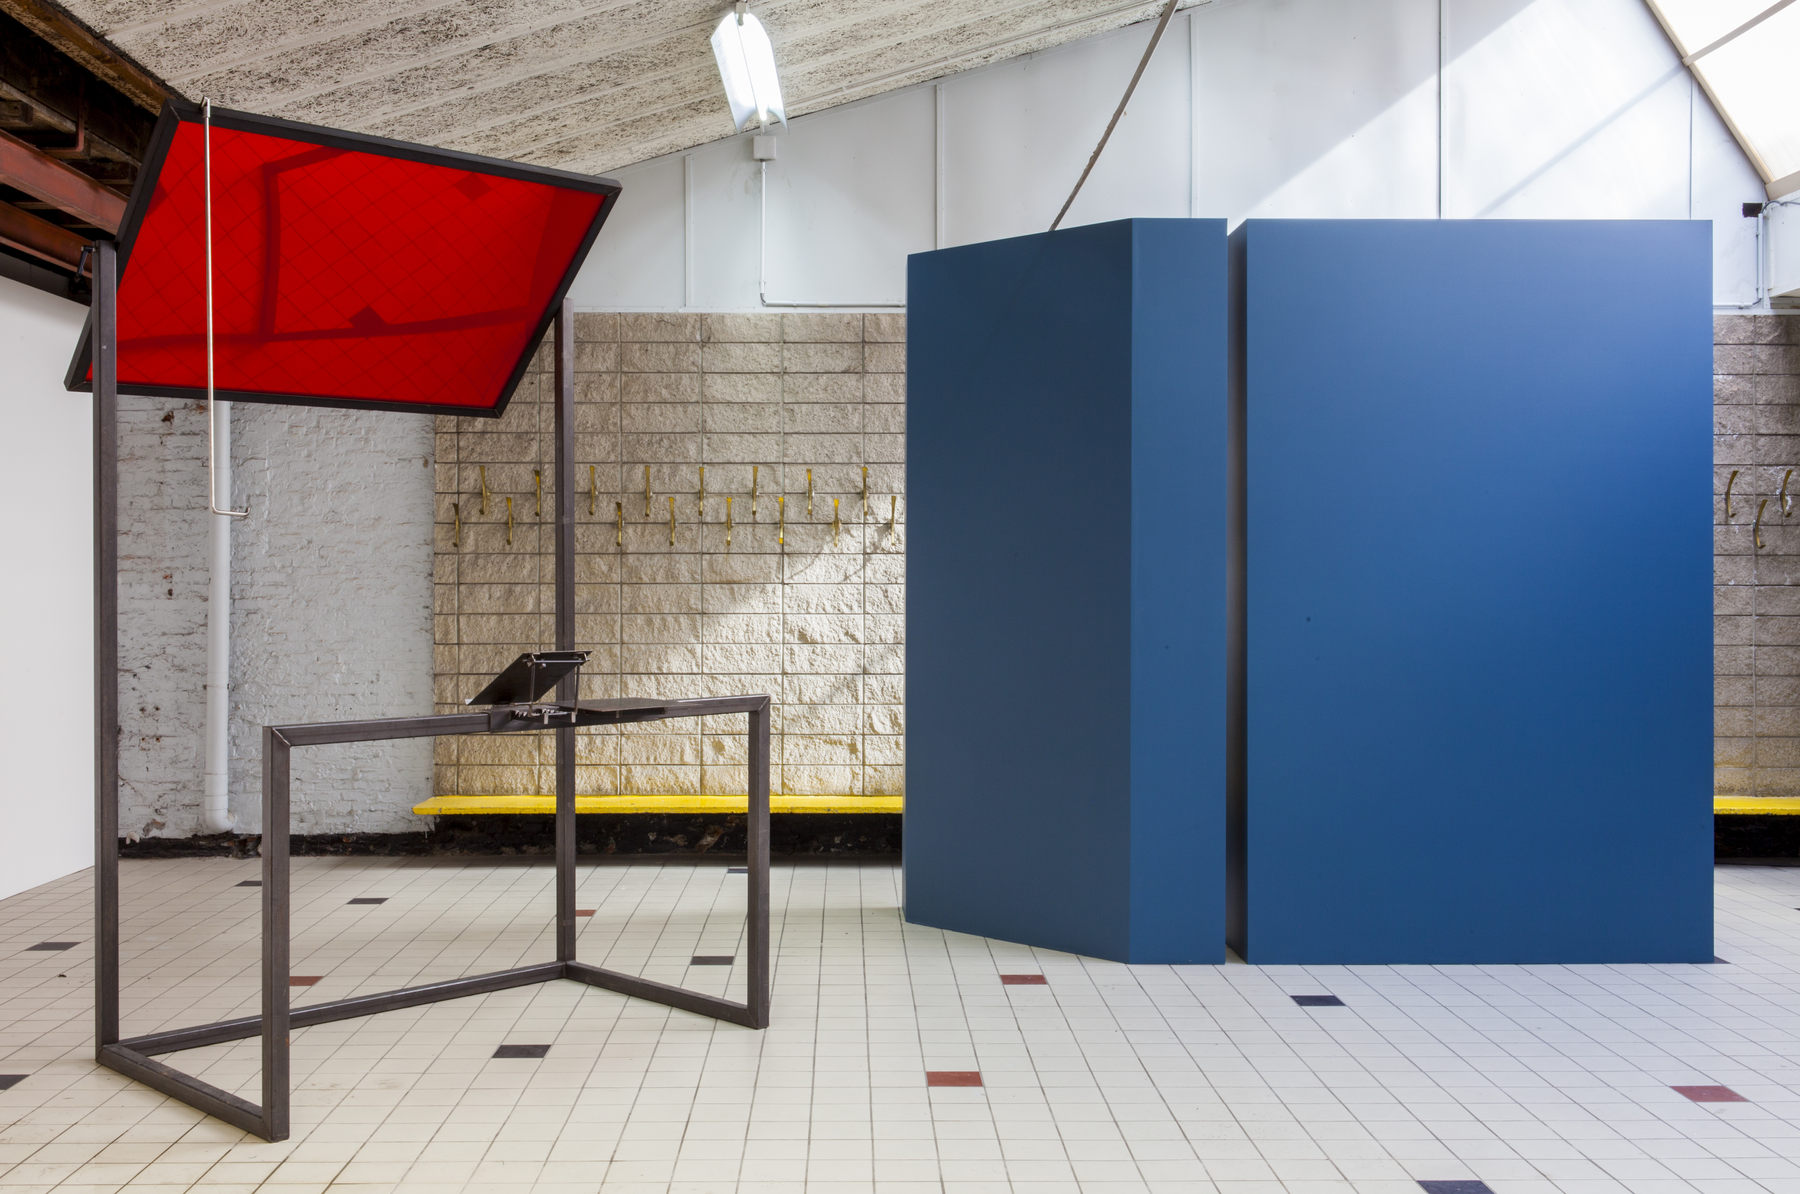 Céline Condorelli, 'Additionals (Structure for Public Speaking), 2012-2013, in 'The Corner Show', installation view, Extra City Kunsthal, 2015 © We Document Art